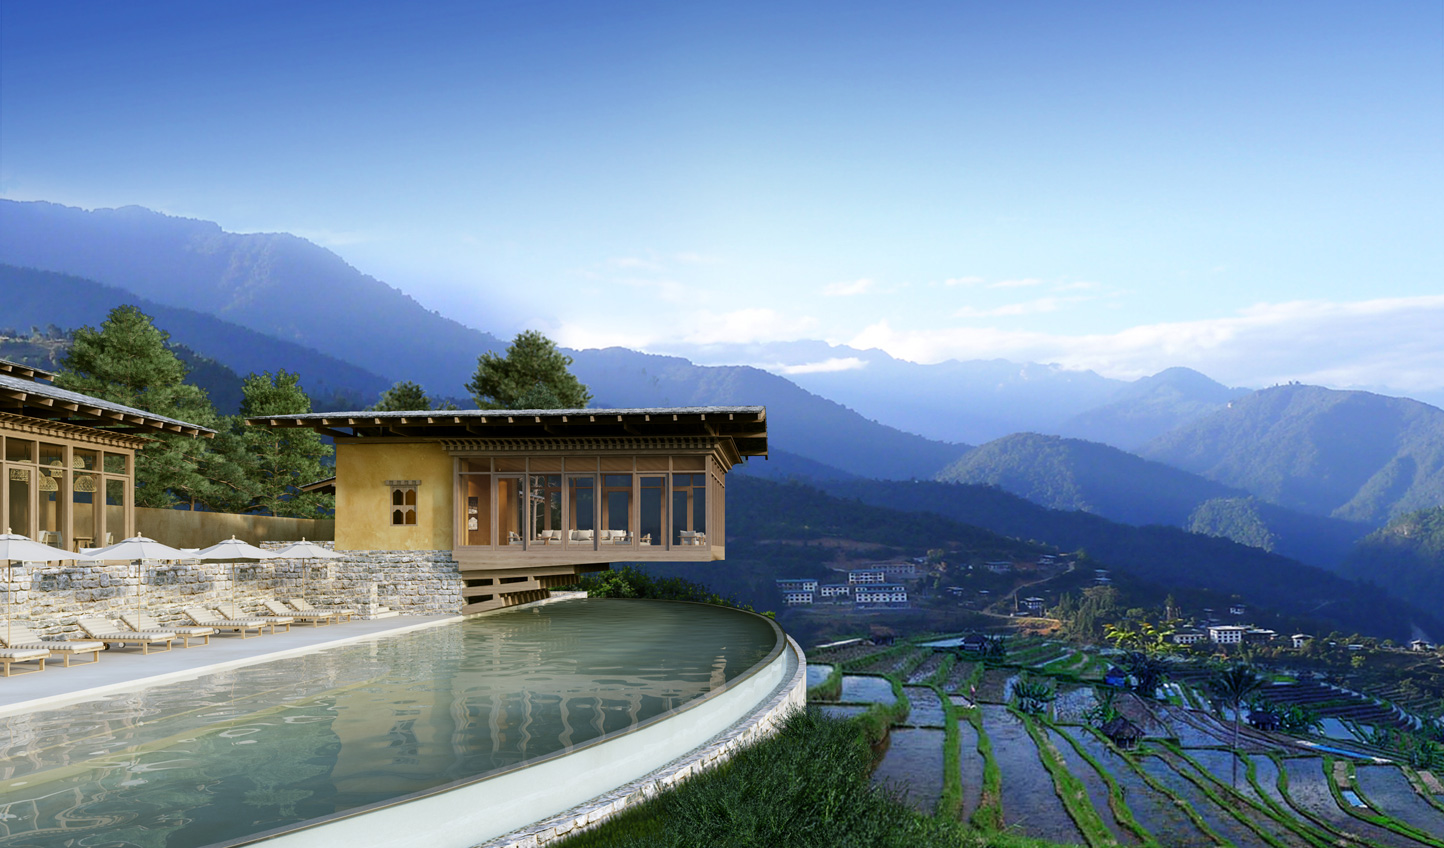 Intimate lodges with showstopping design, look out over the valley from Six Senses Punakha